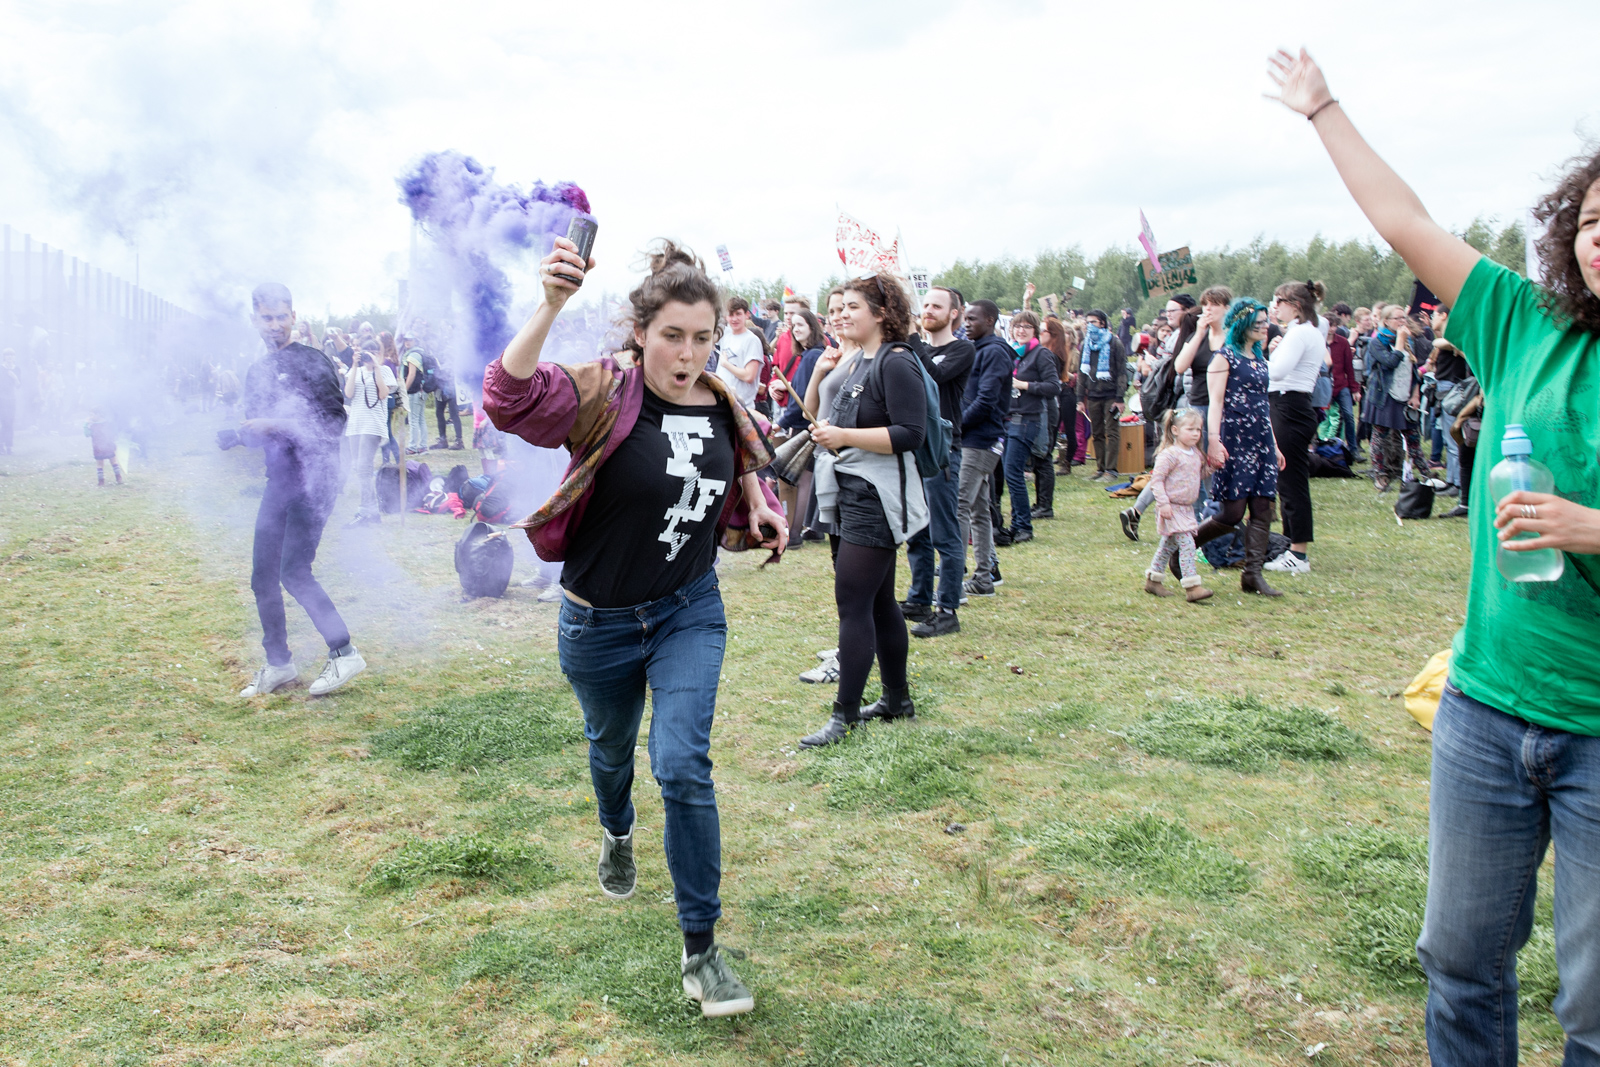 Yarlswood Demo-May 2017-Photo Bex Wade-18.jpg